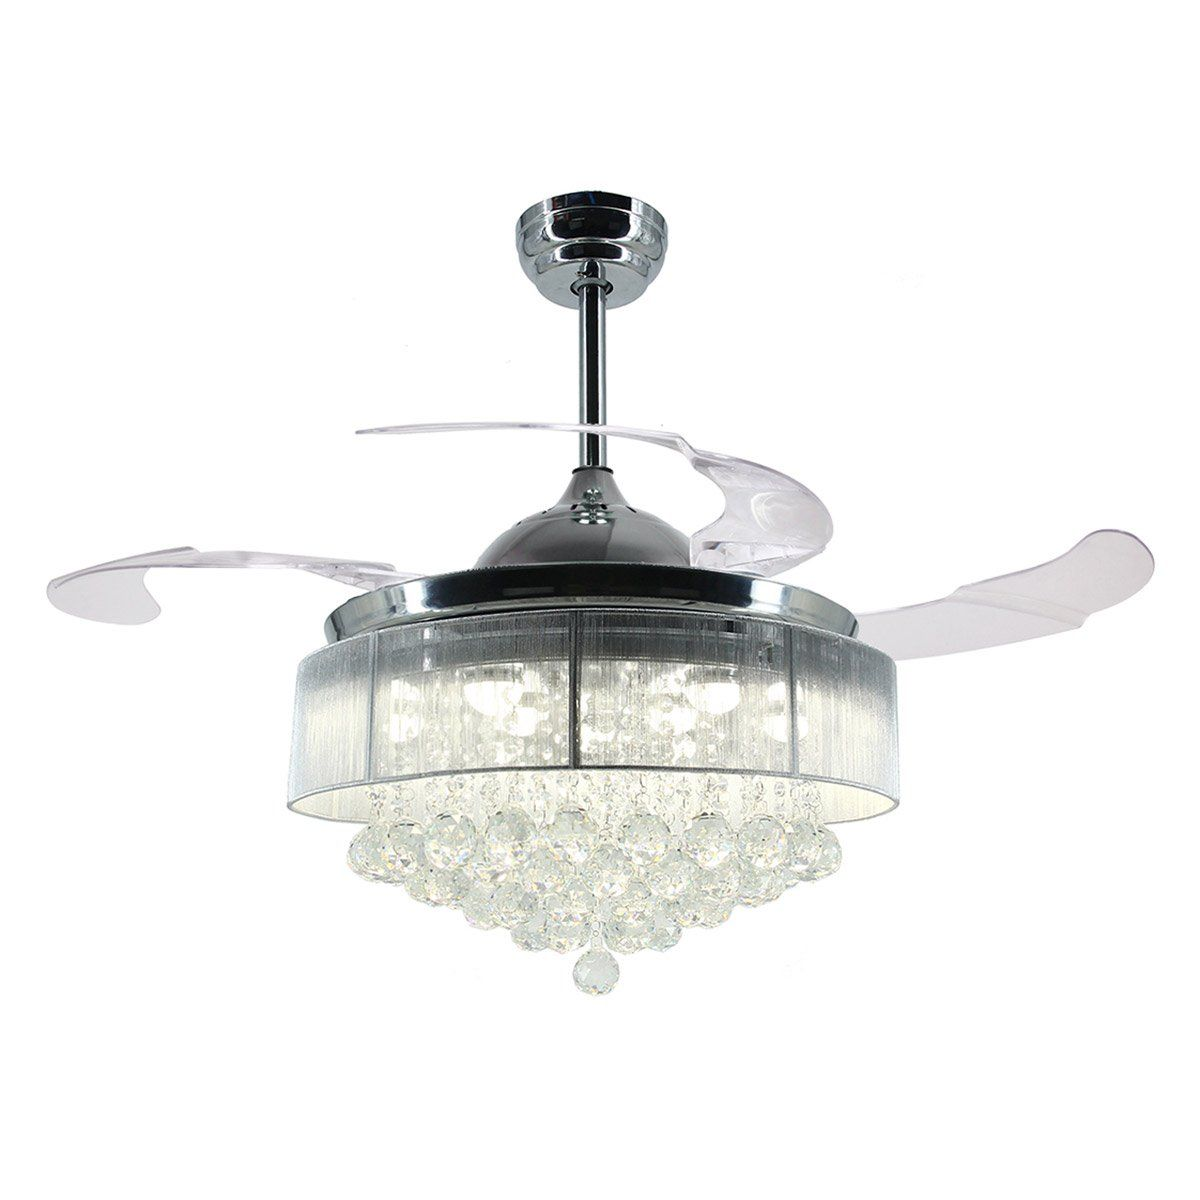 Luxury Fan with Retractable Blades